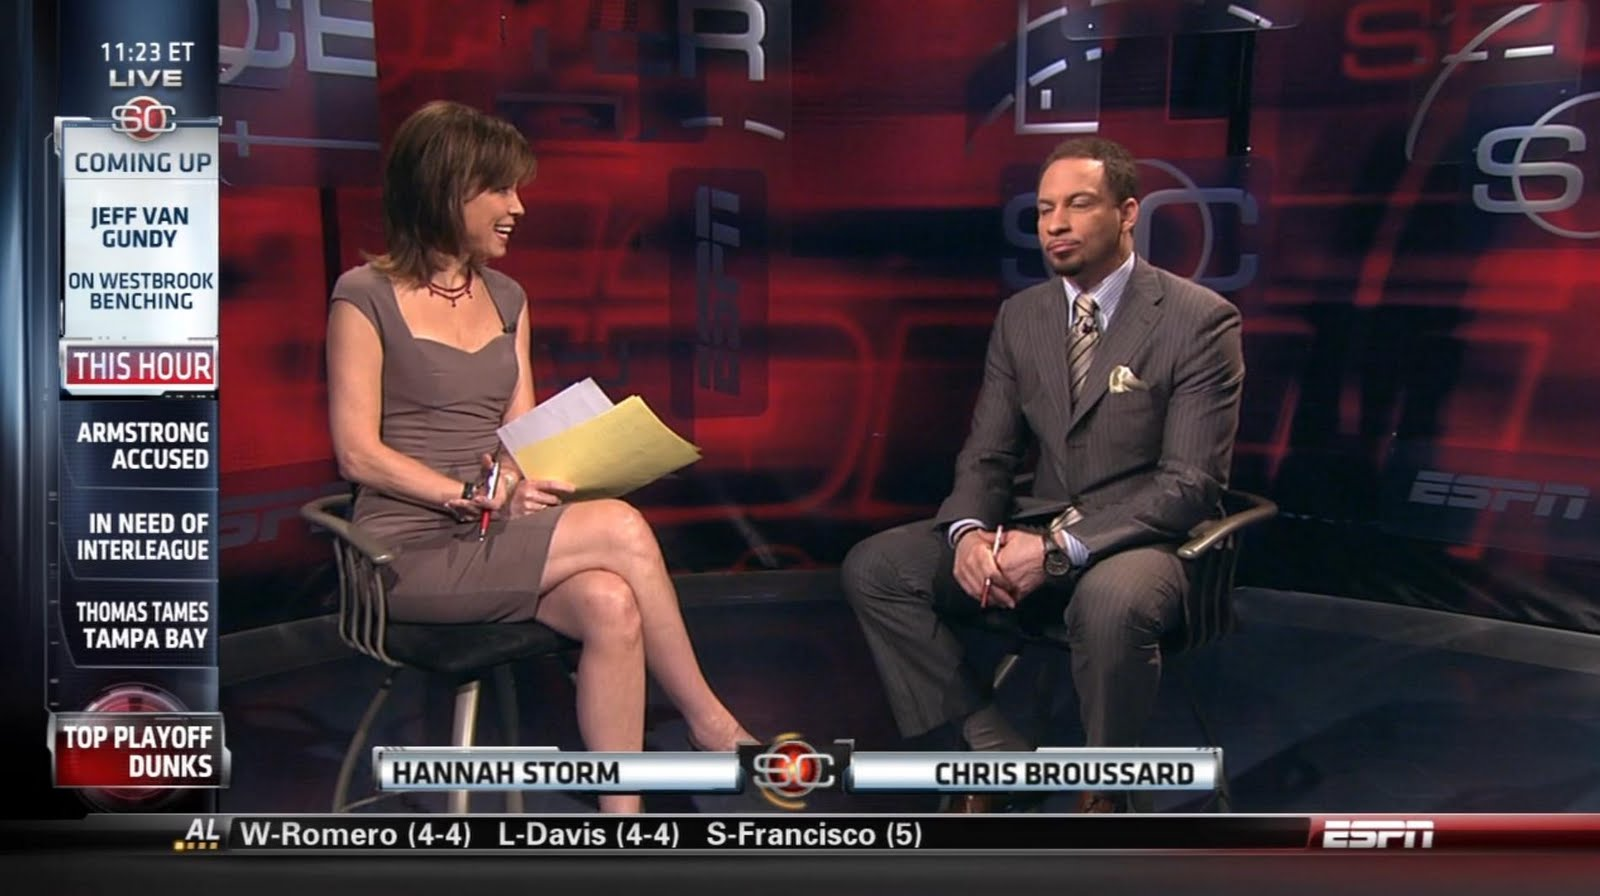 ESPN's Hannah Storm Sexy Legs On Sportscenter - Sexy Leg Cross